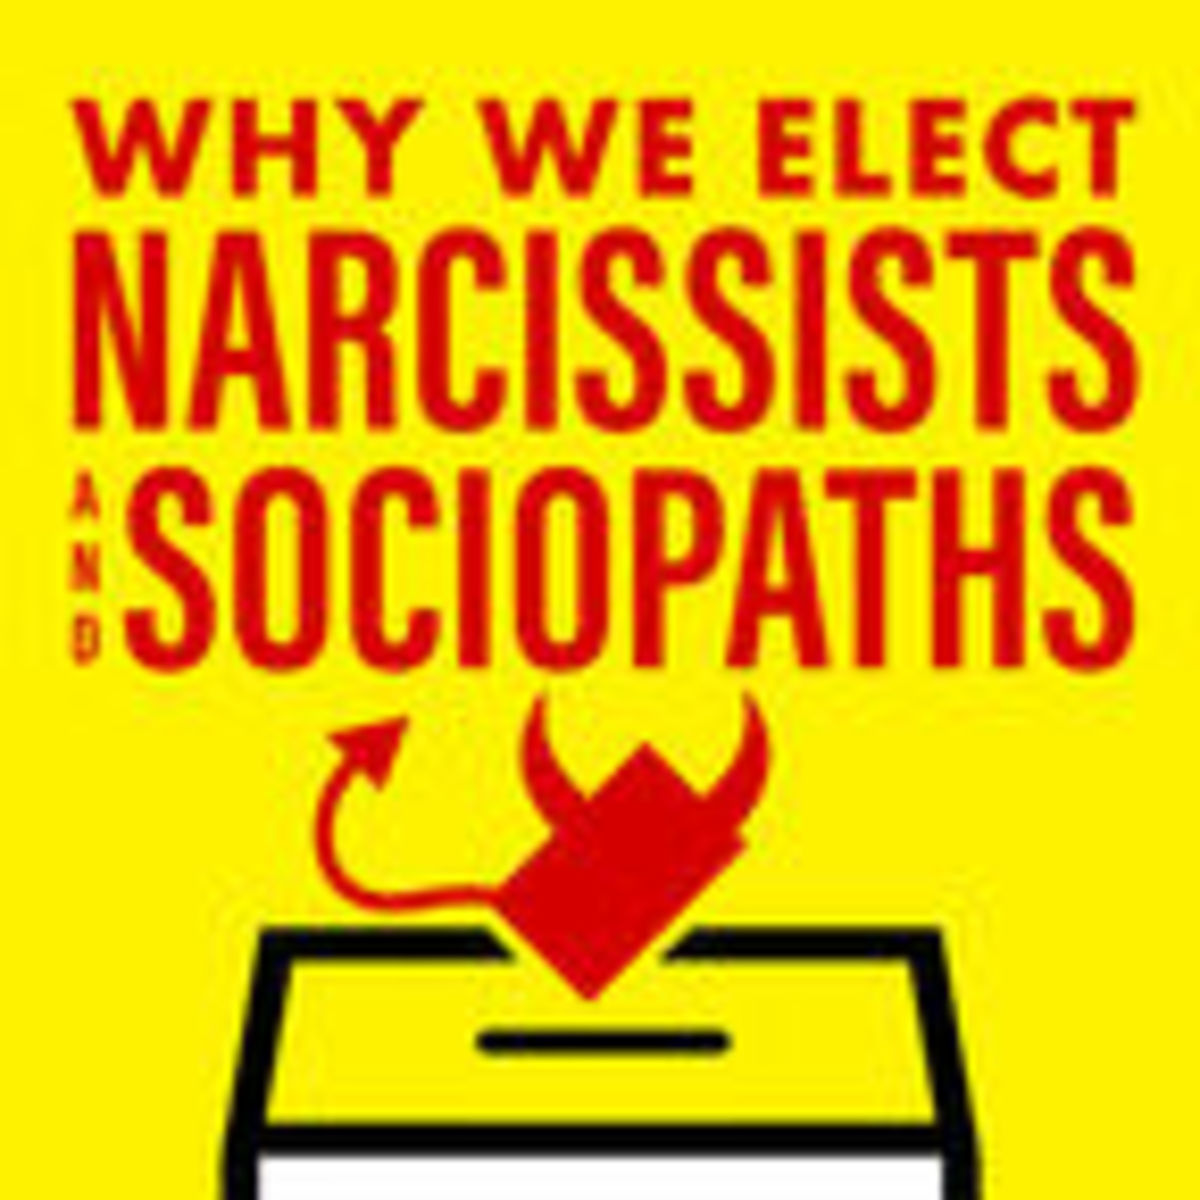 4 Reasons Why We Elect Narcissists and Sociopaths | Psychology Today